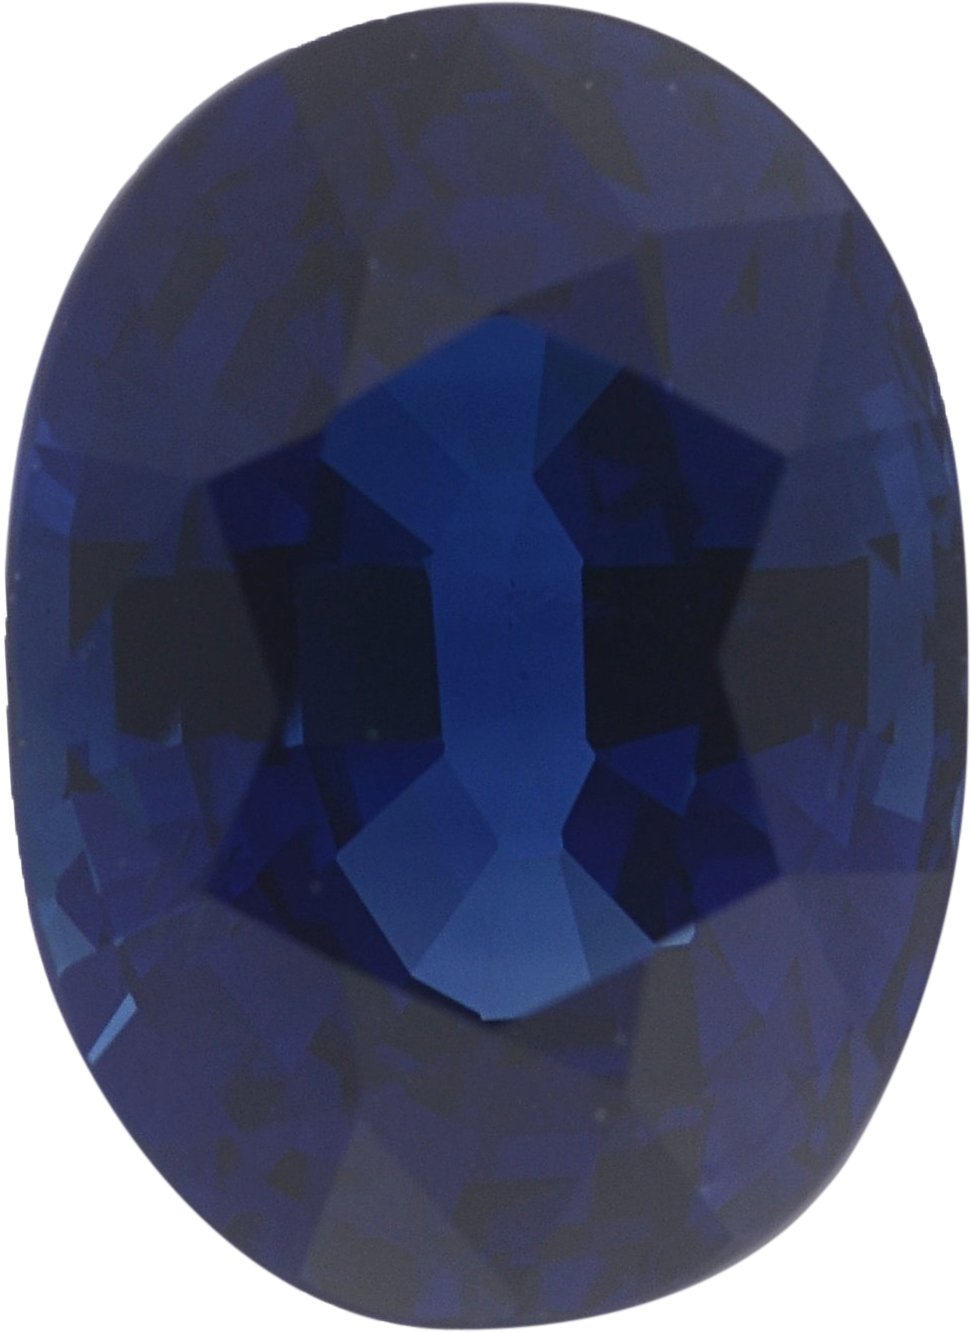 1.38 carats Blue Loose Sapphire Gemstone in Oval Cut, 7.28 x 5.31 mm